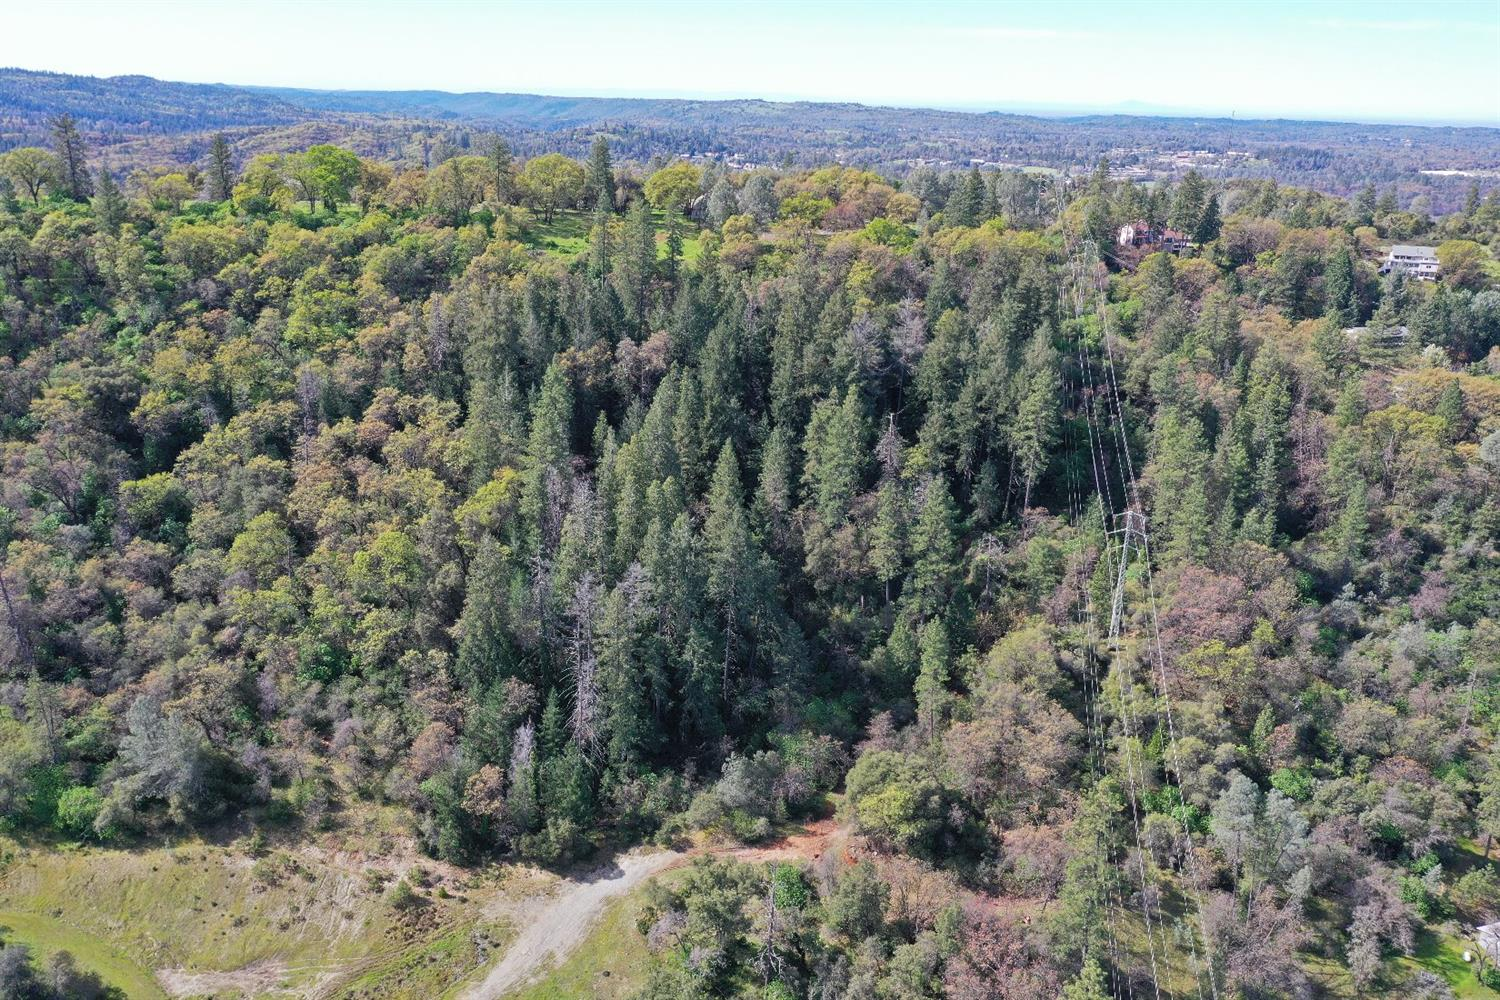 A unique opportunity! These 2 parcels, 5 and 6 acres, are contiguous to each other and downtown Placerville. They are both heavily treed with great local views and decent access. The lots are close to schools, shops, an easy walk to our local farmers market, restaurants and all the fun Placerville offers. Located in a cul-de-sac and minutes from Highway 50, these could be the perfect lots to build your dream home. As an added bonus they are in the neighborhood of 4 newly constructed beautiful homes.